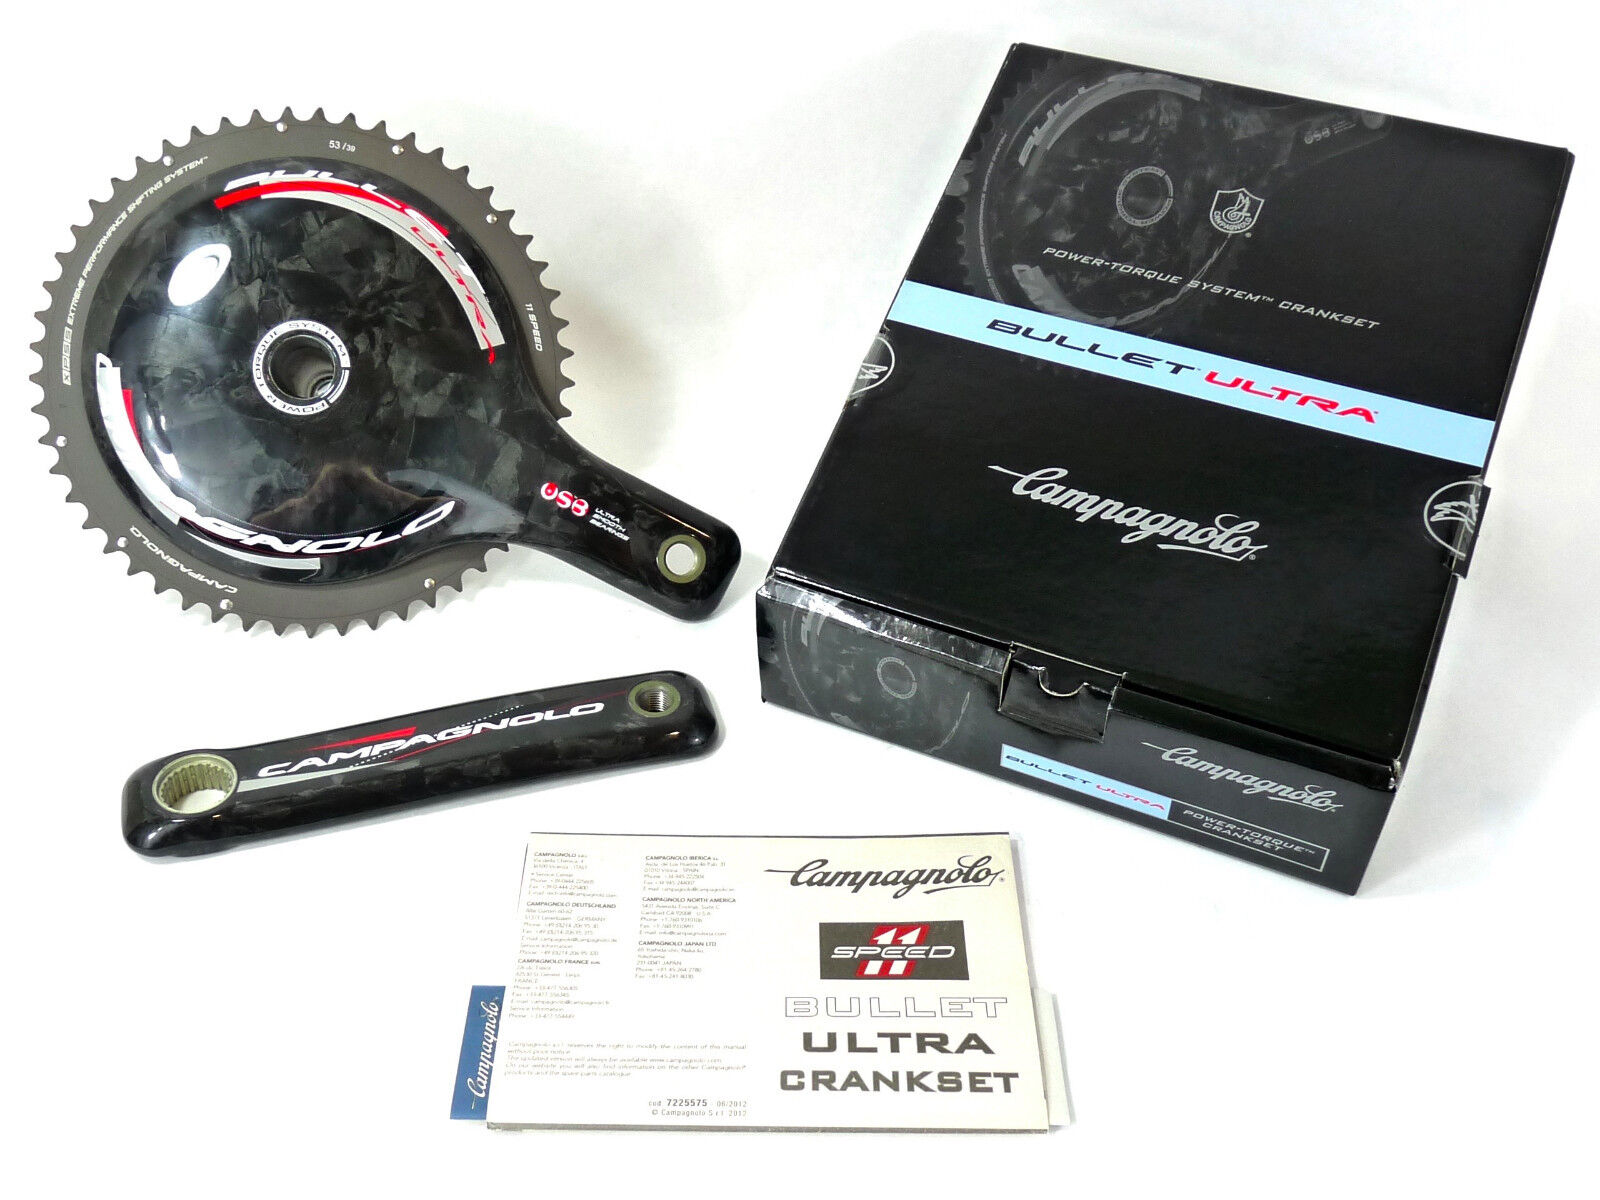 Campagnolo Bullet  Crankset Carbon 11 Speed 170mm 53 39 USB CERAMIC BEARINGS NOS  deals sale